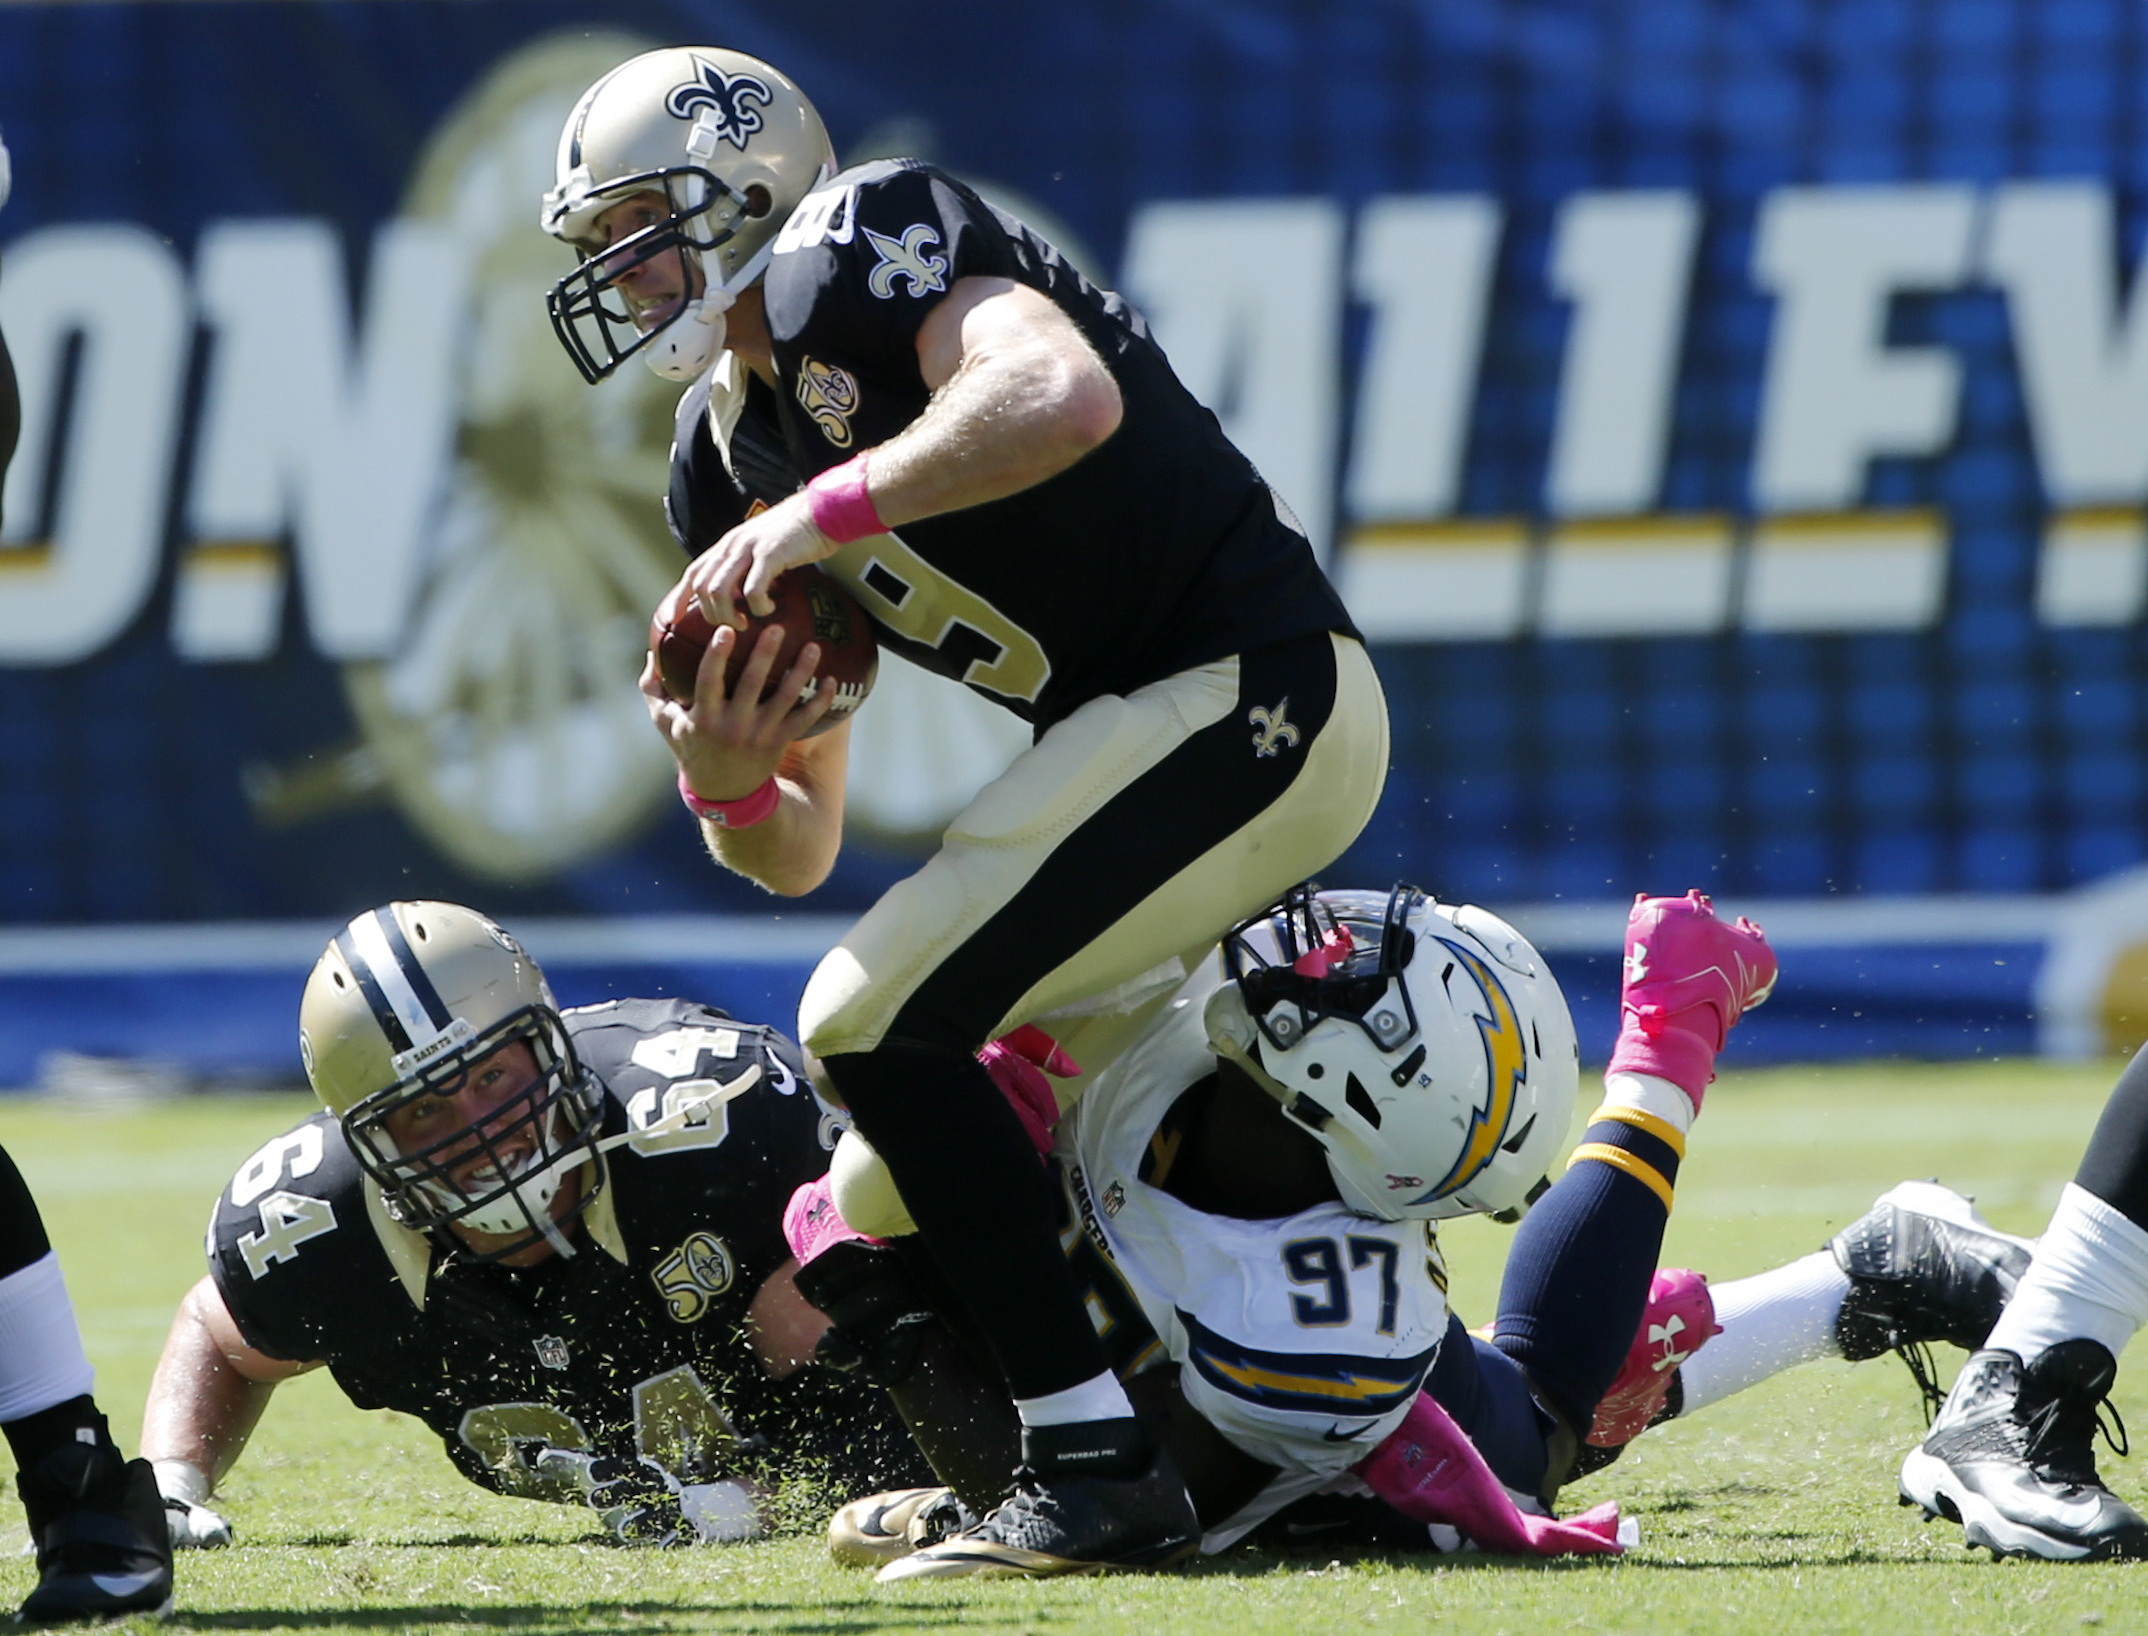 New Orleans Saints quarterback Drew Brees, top, is sacked by San Diego Chargers outside linebacker Jeremiah Attaochu (97) during the second half of an NFL football game Sunday, Oct. 2, 2016, in San Diego. (AP Photo/Lenny Ignelzi)